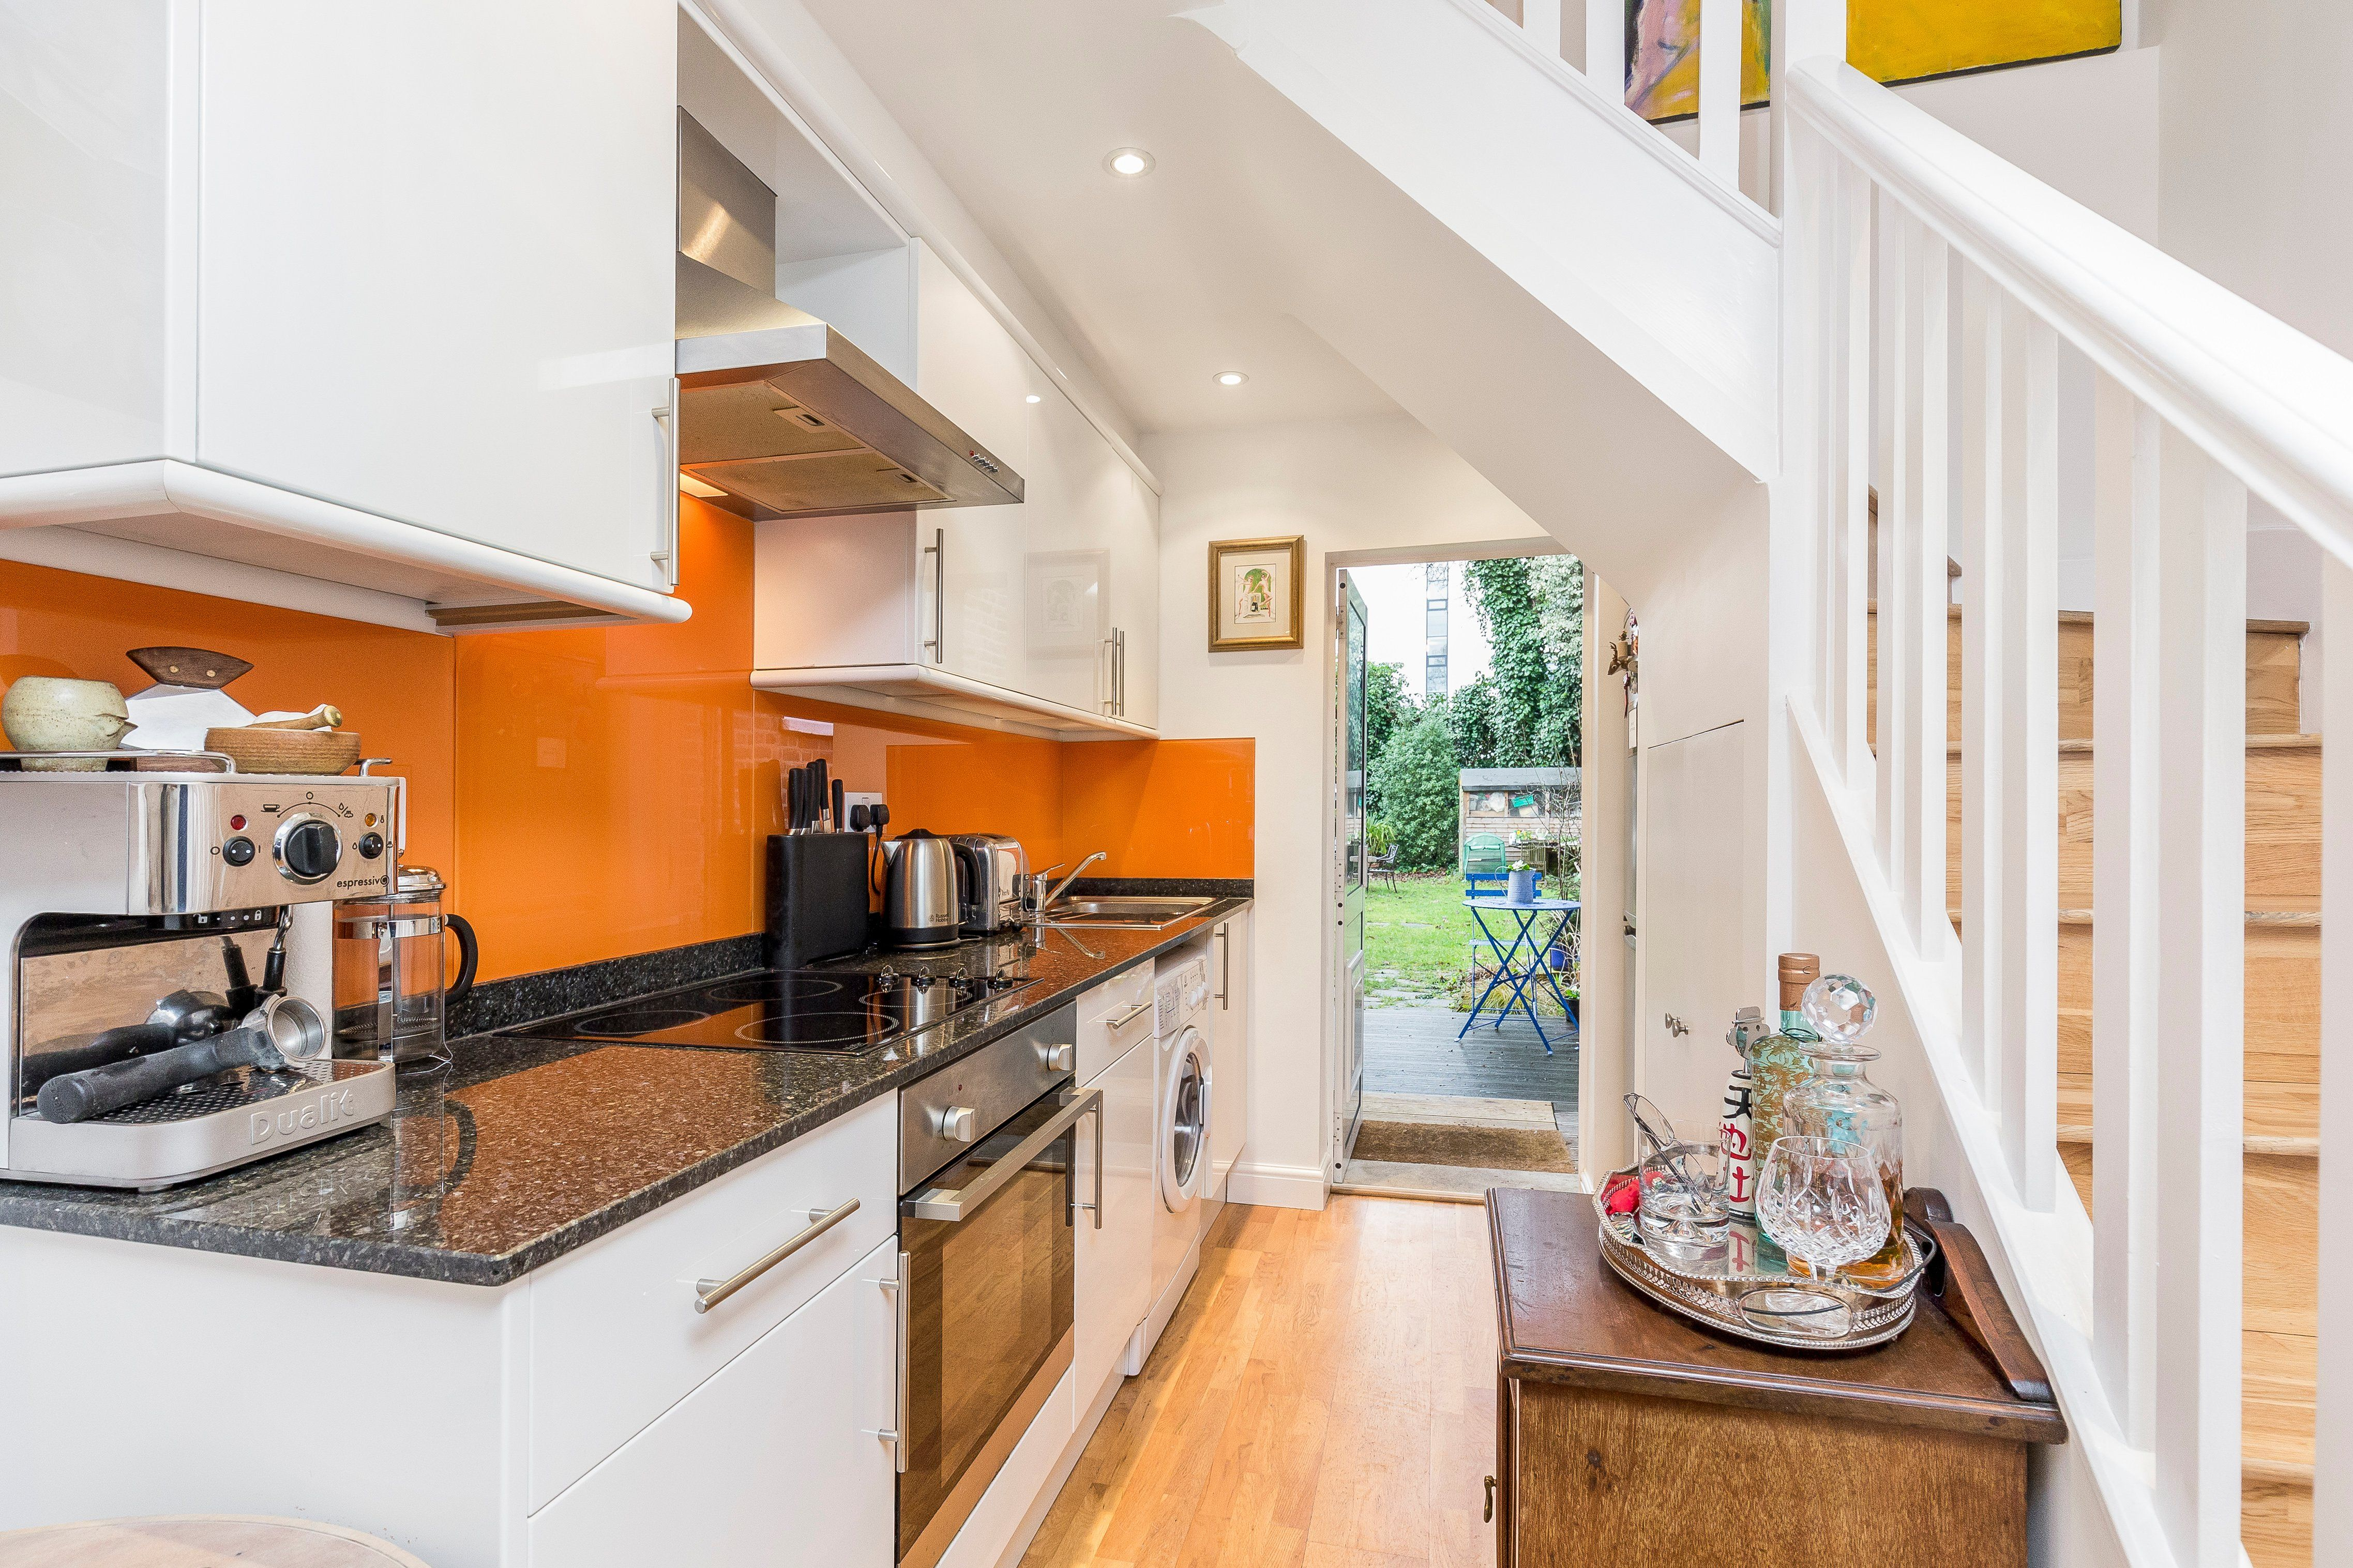 A Former Coach House One Room Wide In Pictures Stylish